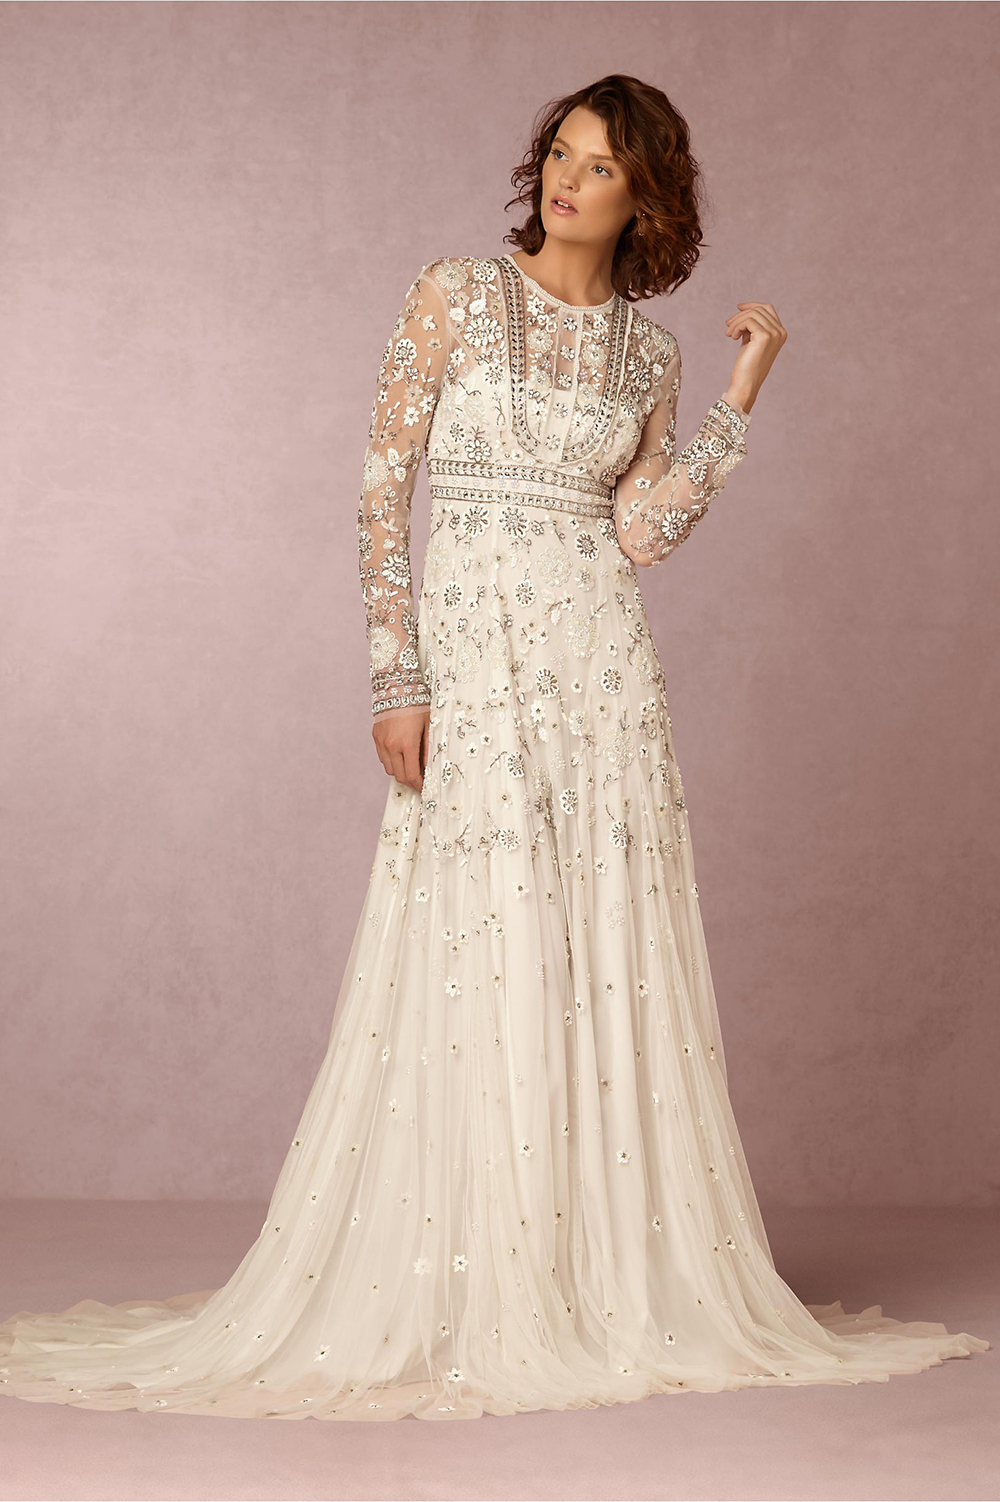 eaedcfa3182 BHLDN Tabitha Gown - BHLDN Wedding Gowns